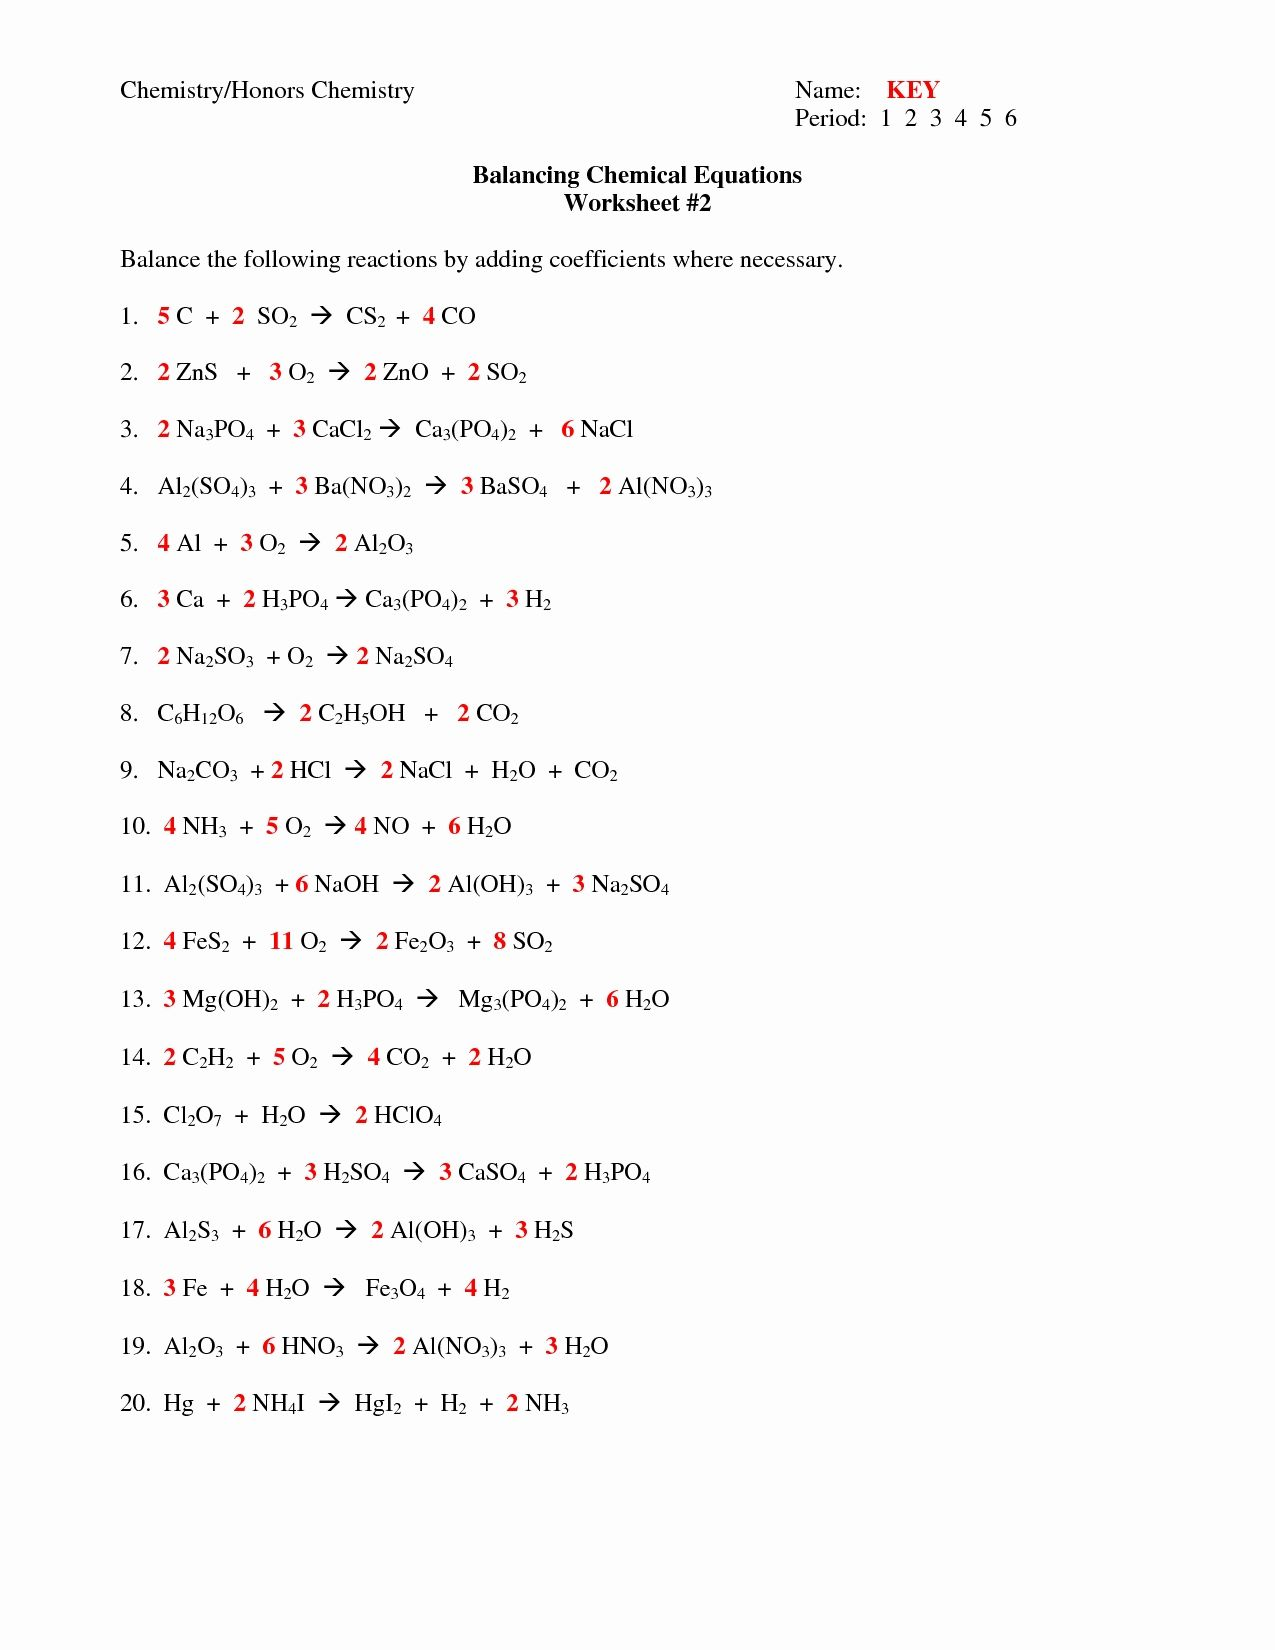 Balancing Chemical Equations Worksheet Answer Key